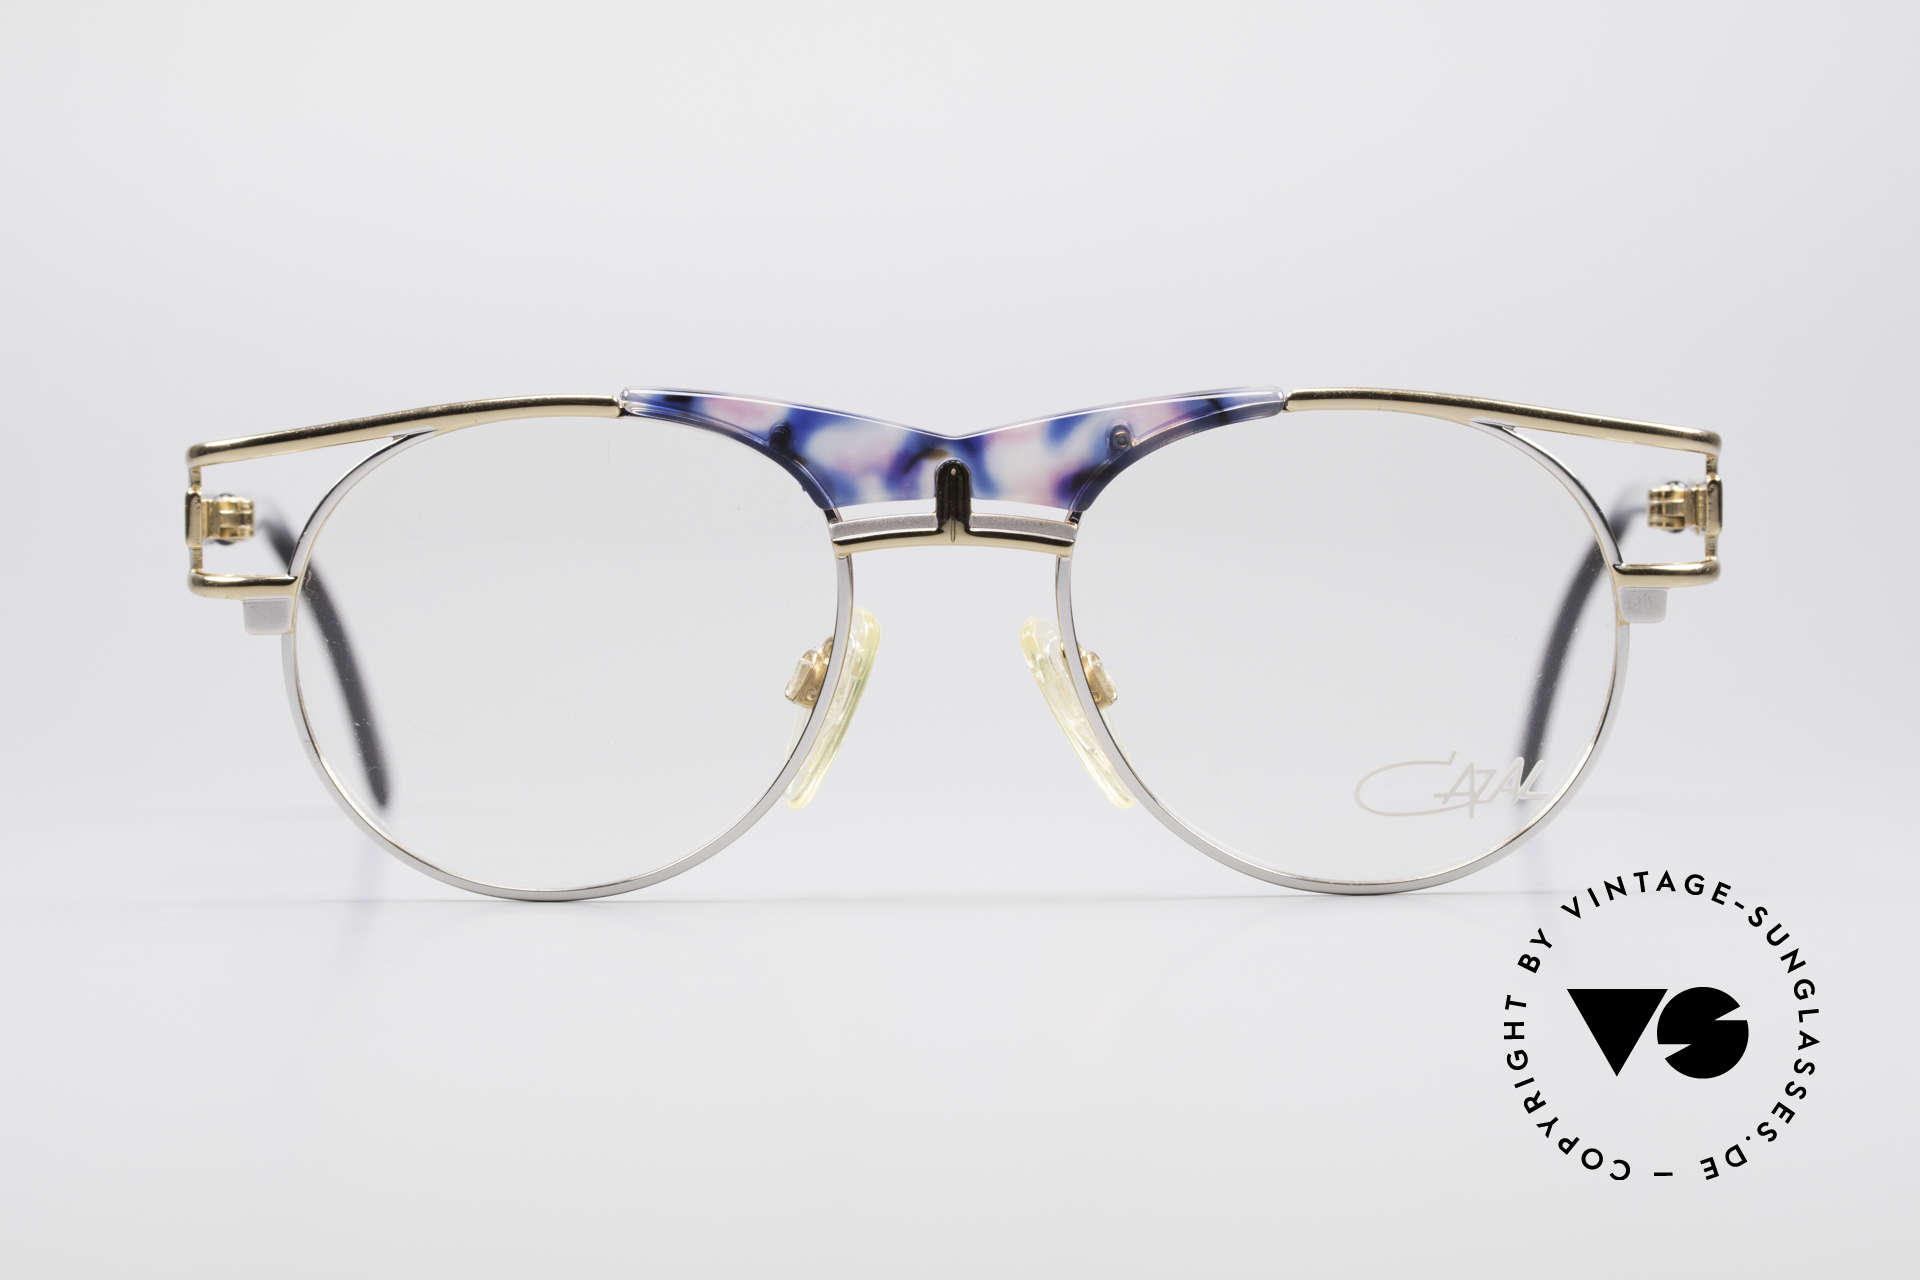 Cazal 244 Iconic Vintage Eyeglasses, 1st class craftsmanship & very pleasant to wear, Made for Men and Women